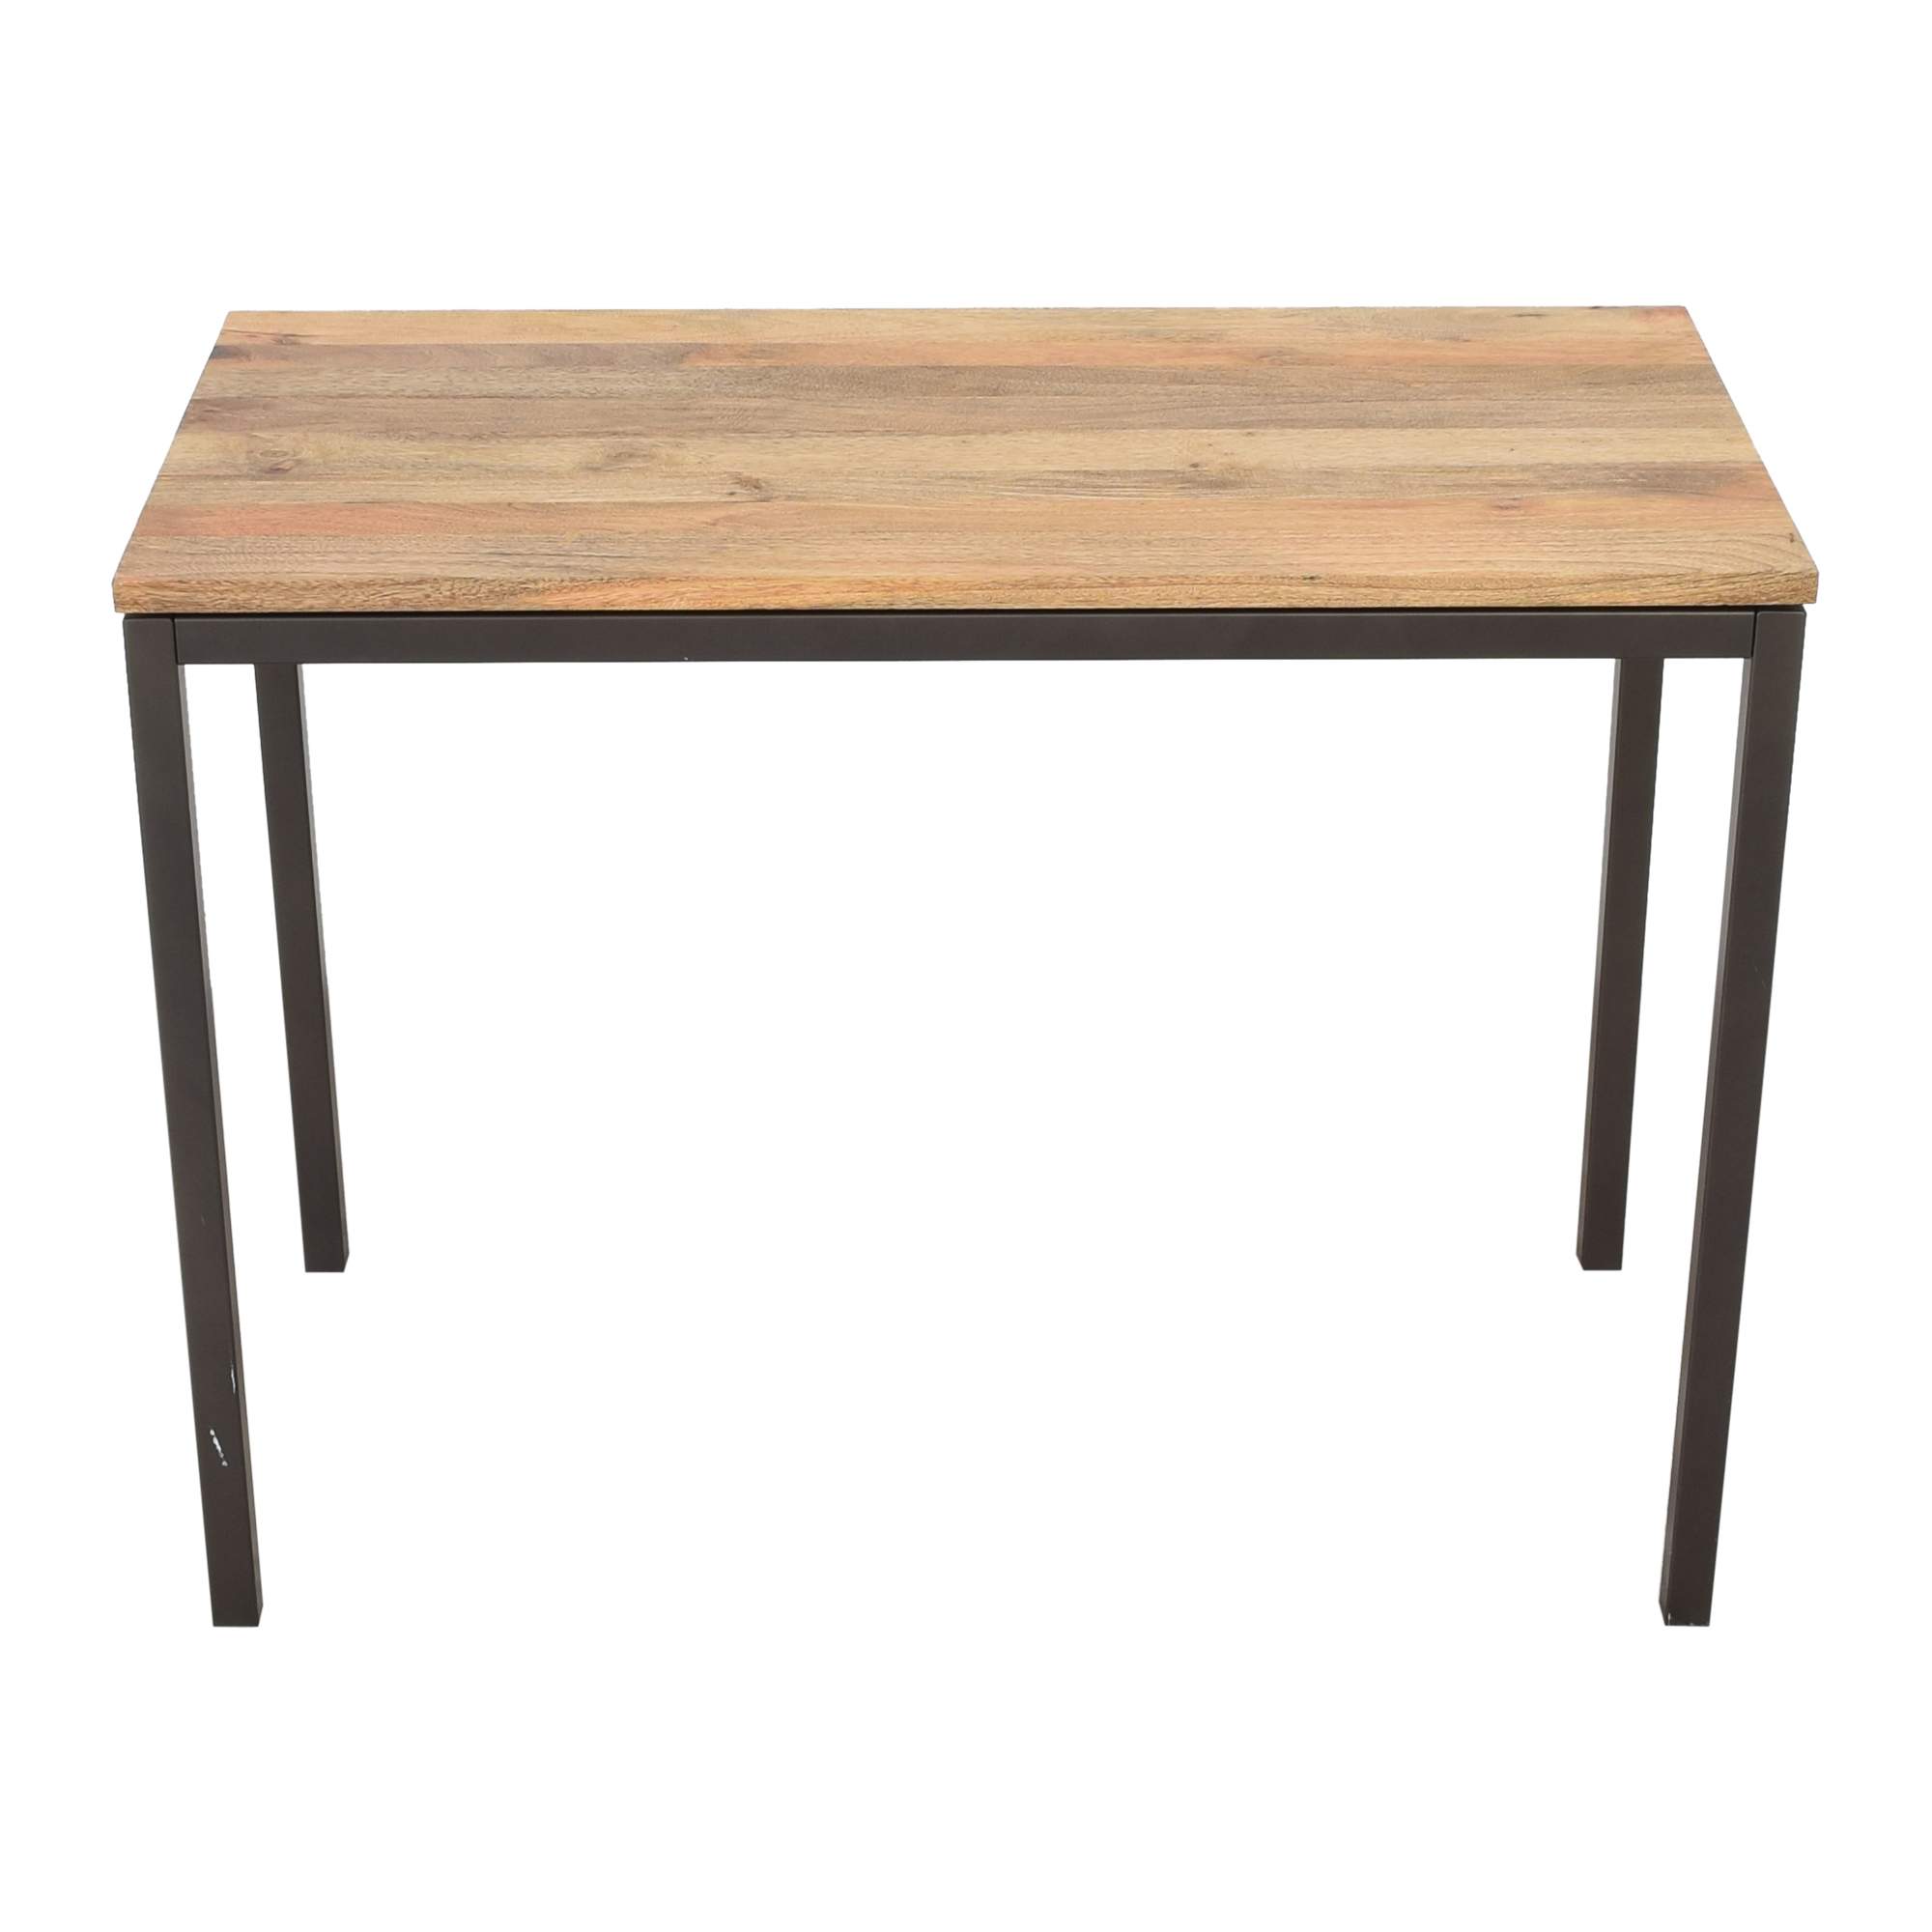 West Elm West Elm Box Frame Counter Table for sale